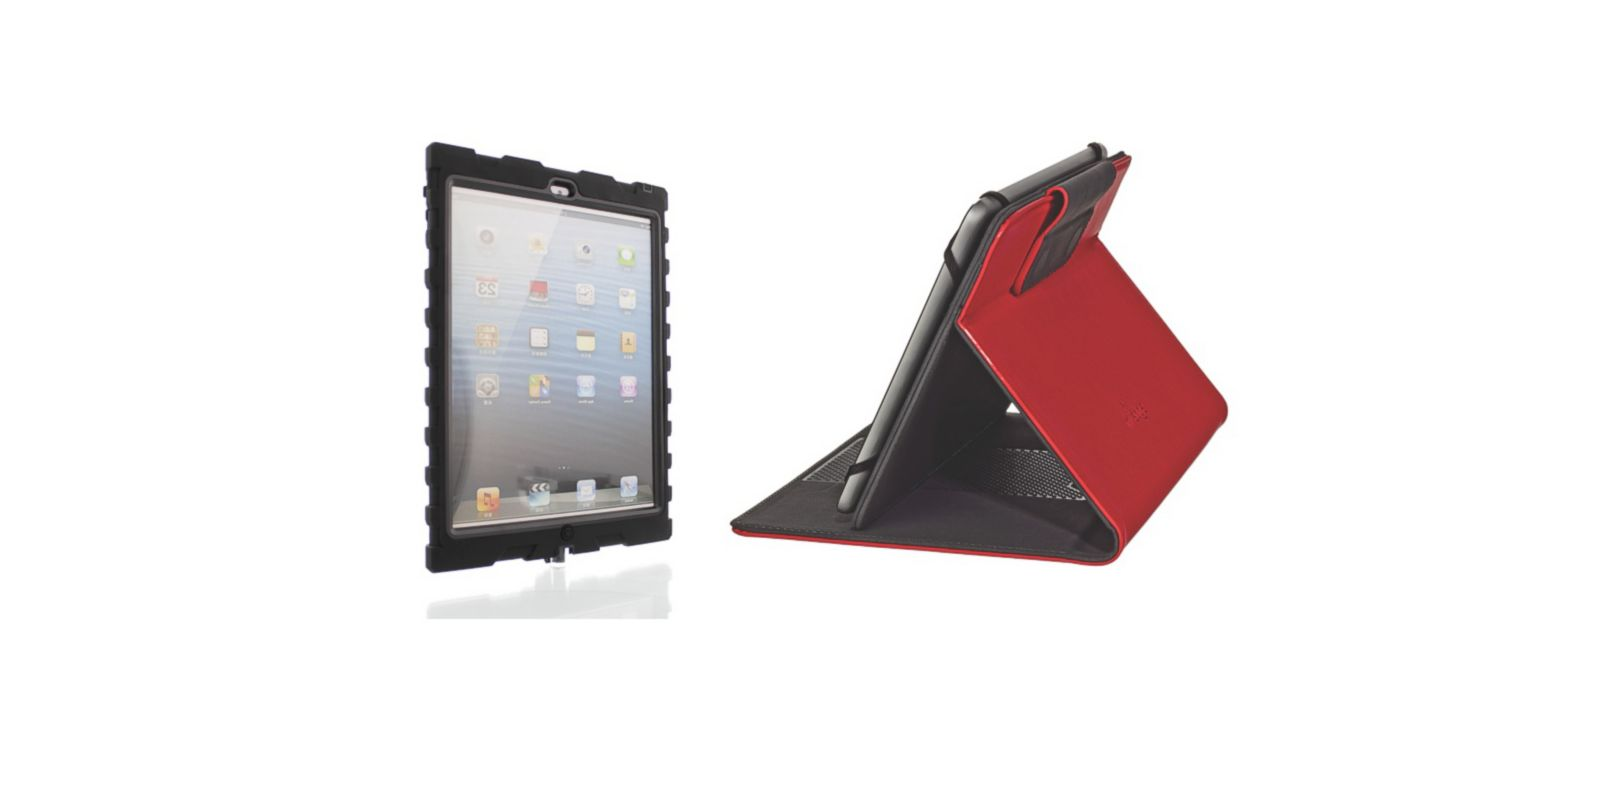 PHOTO: Hard Candys ShockDrop for iPad 5 case pictured left, M-Edges Stealth iPad 5 Case pictured right.